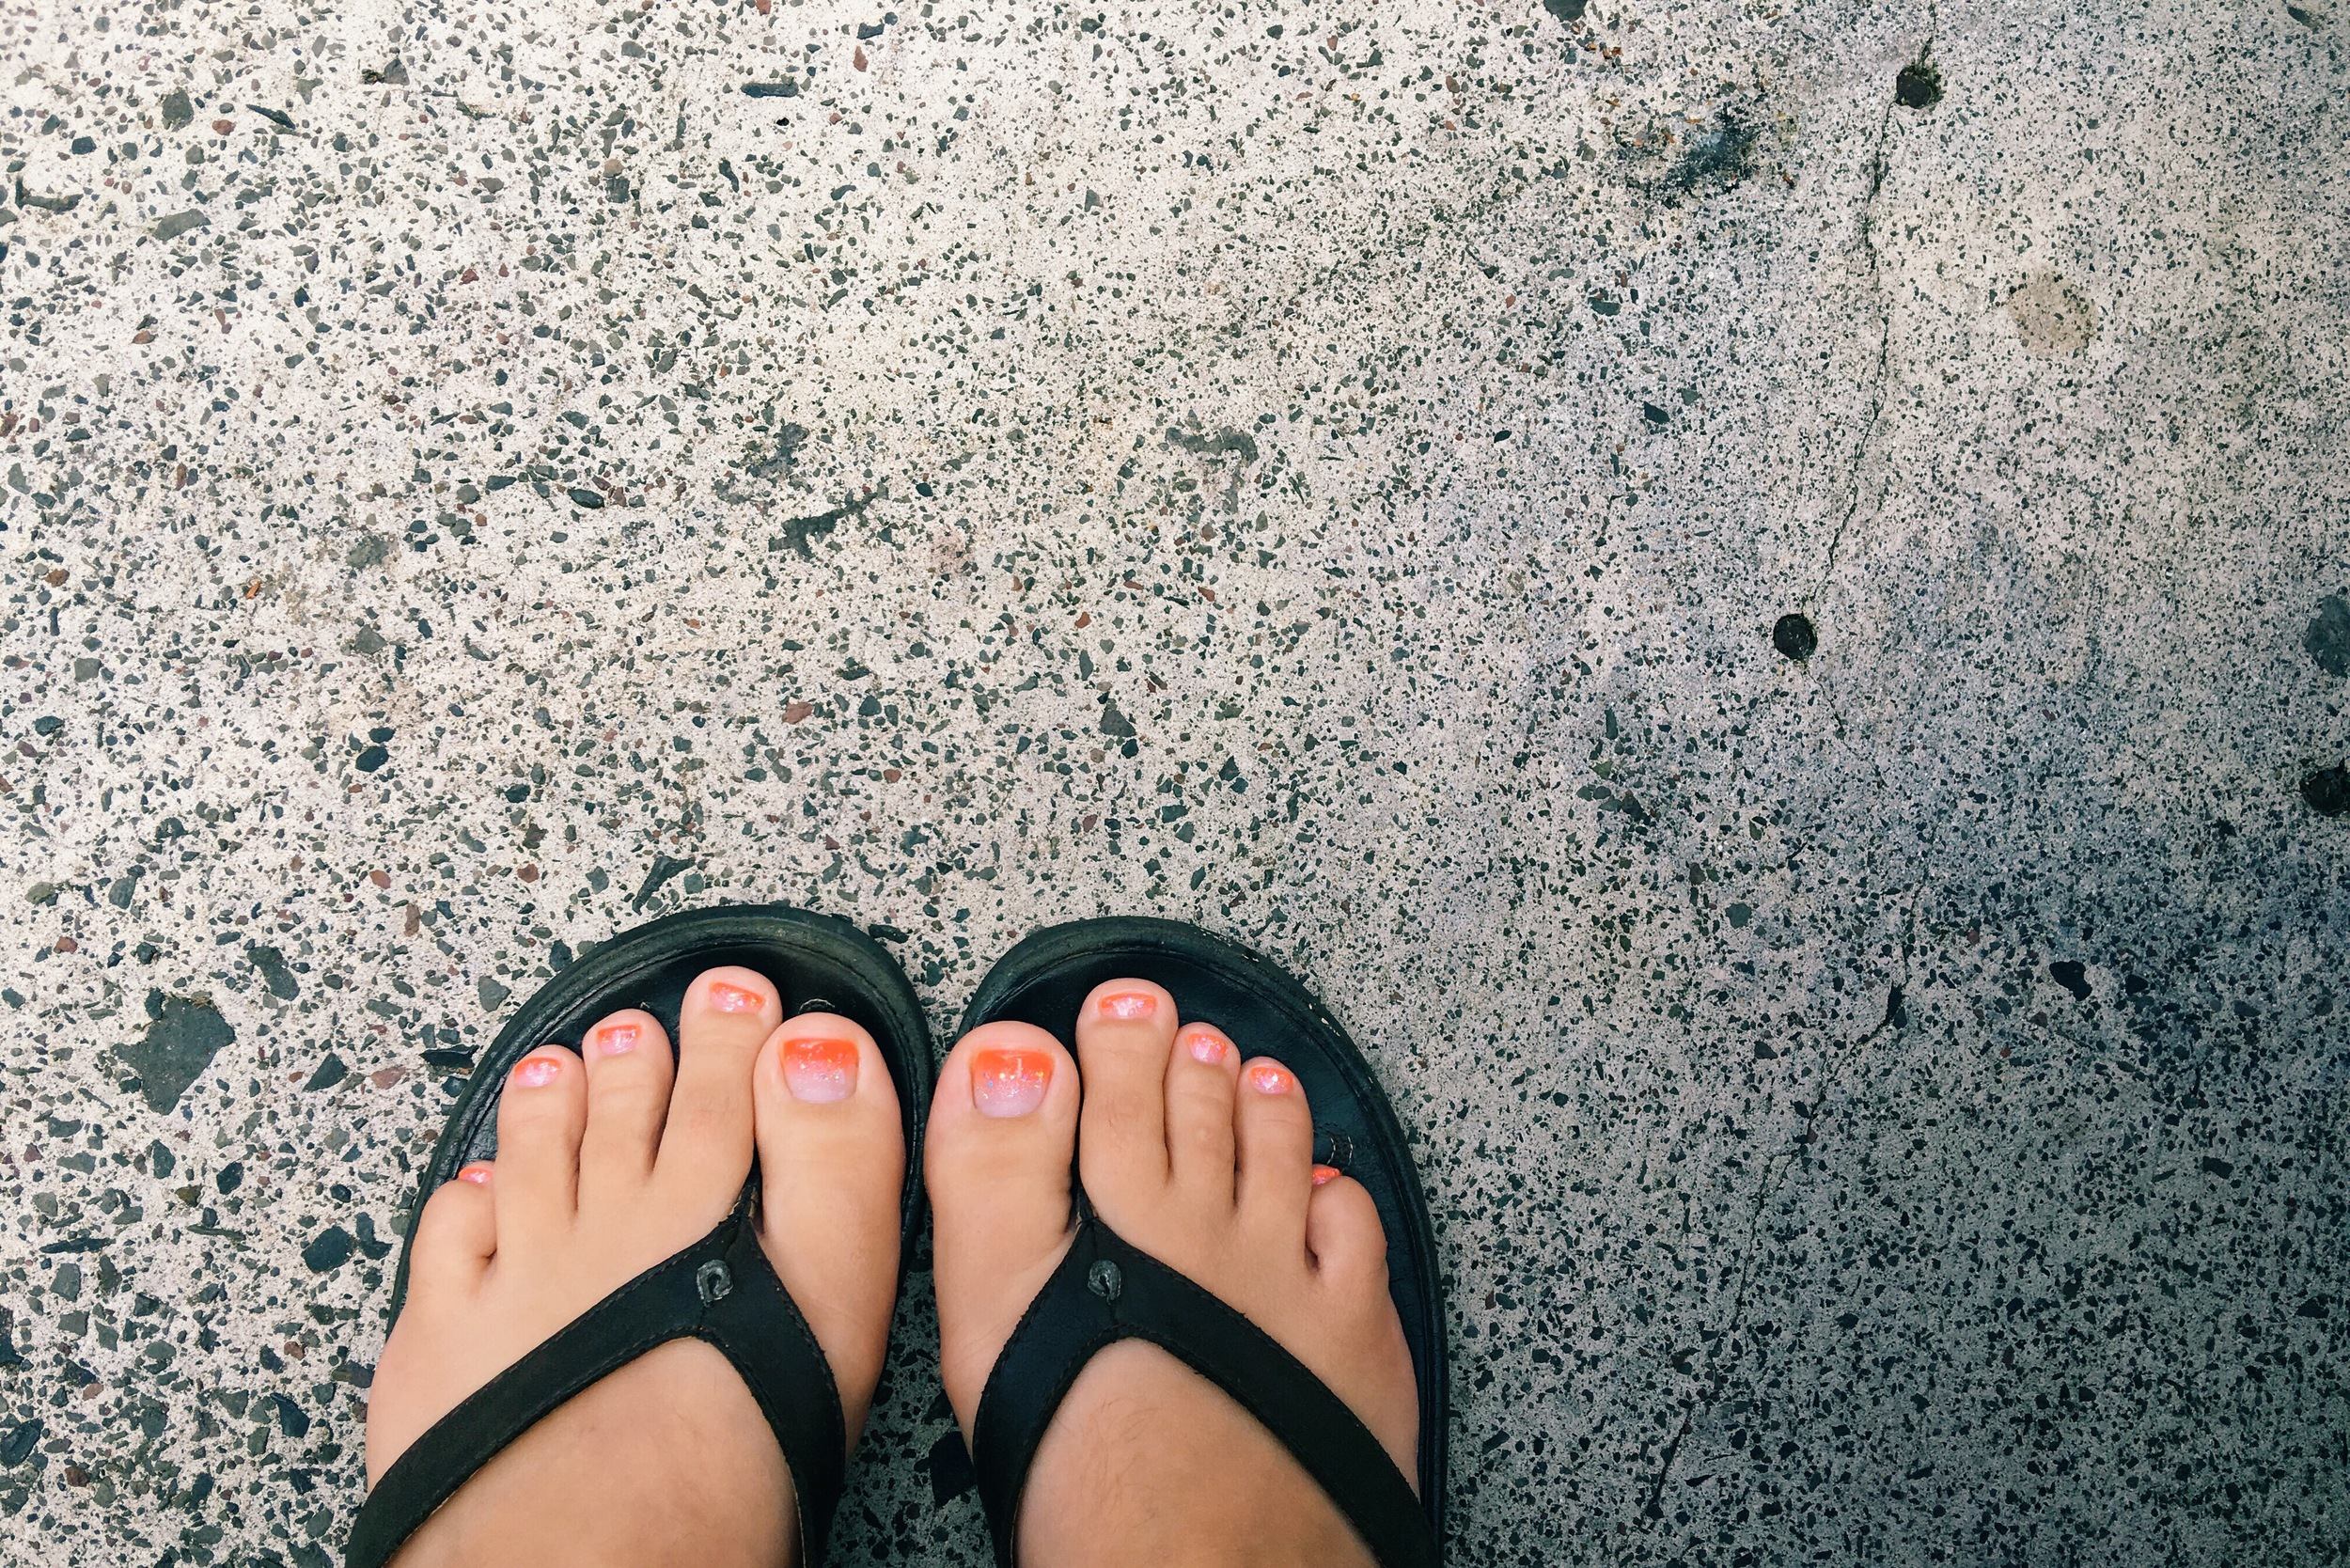 My toes look super fancy. I really was overdue for a pedicure.